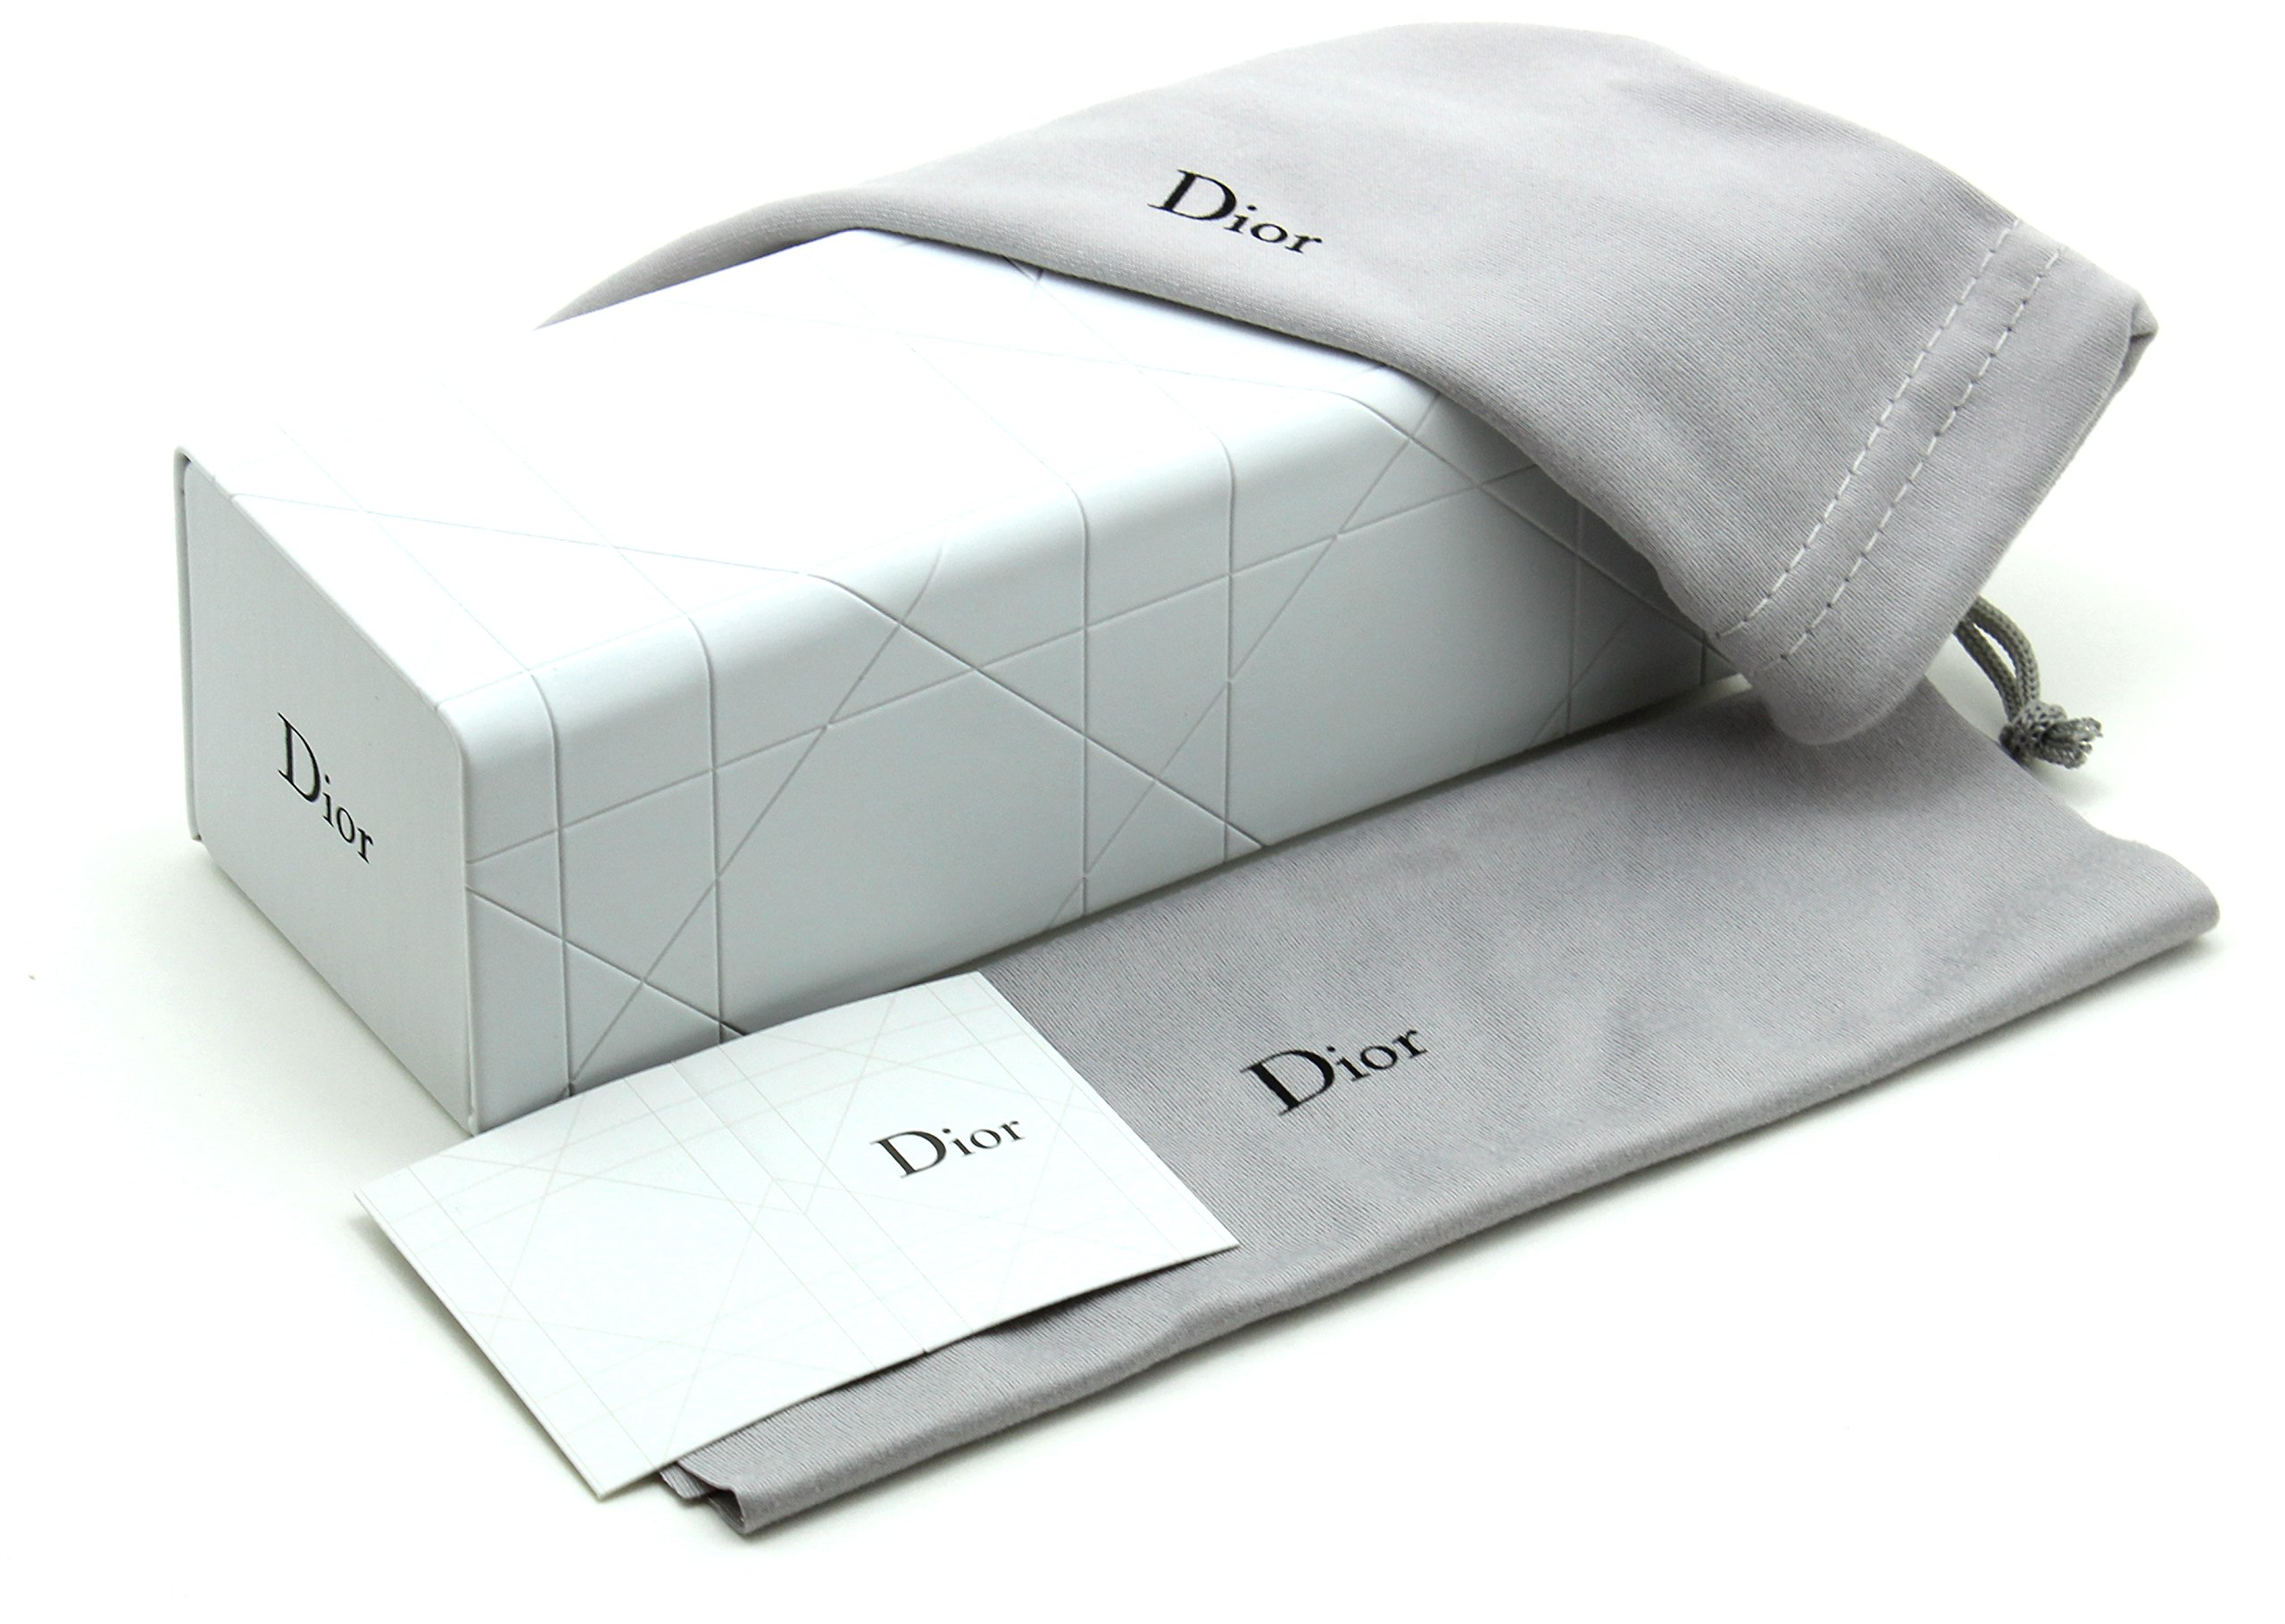 New Original Dior Sunglass Eyeglass Magnetic Hard Case w/Dior Cleaning Cloth and Soft Pouch Small